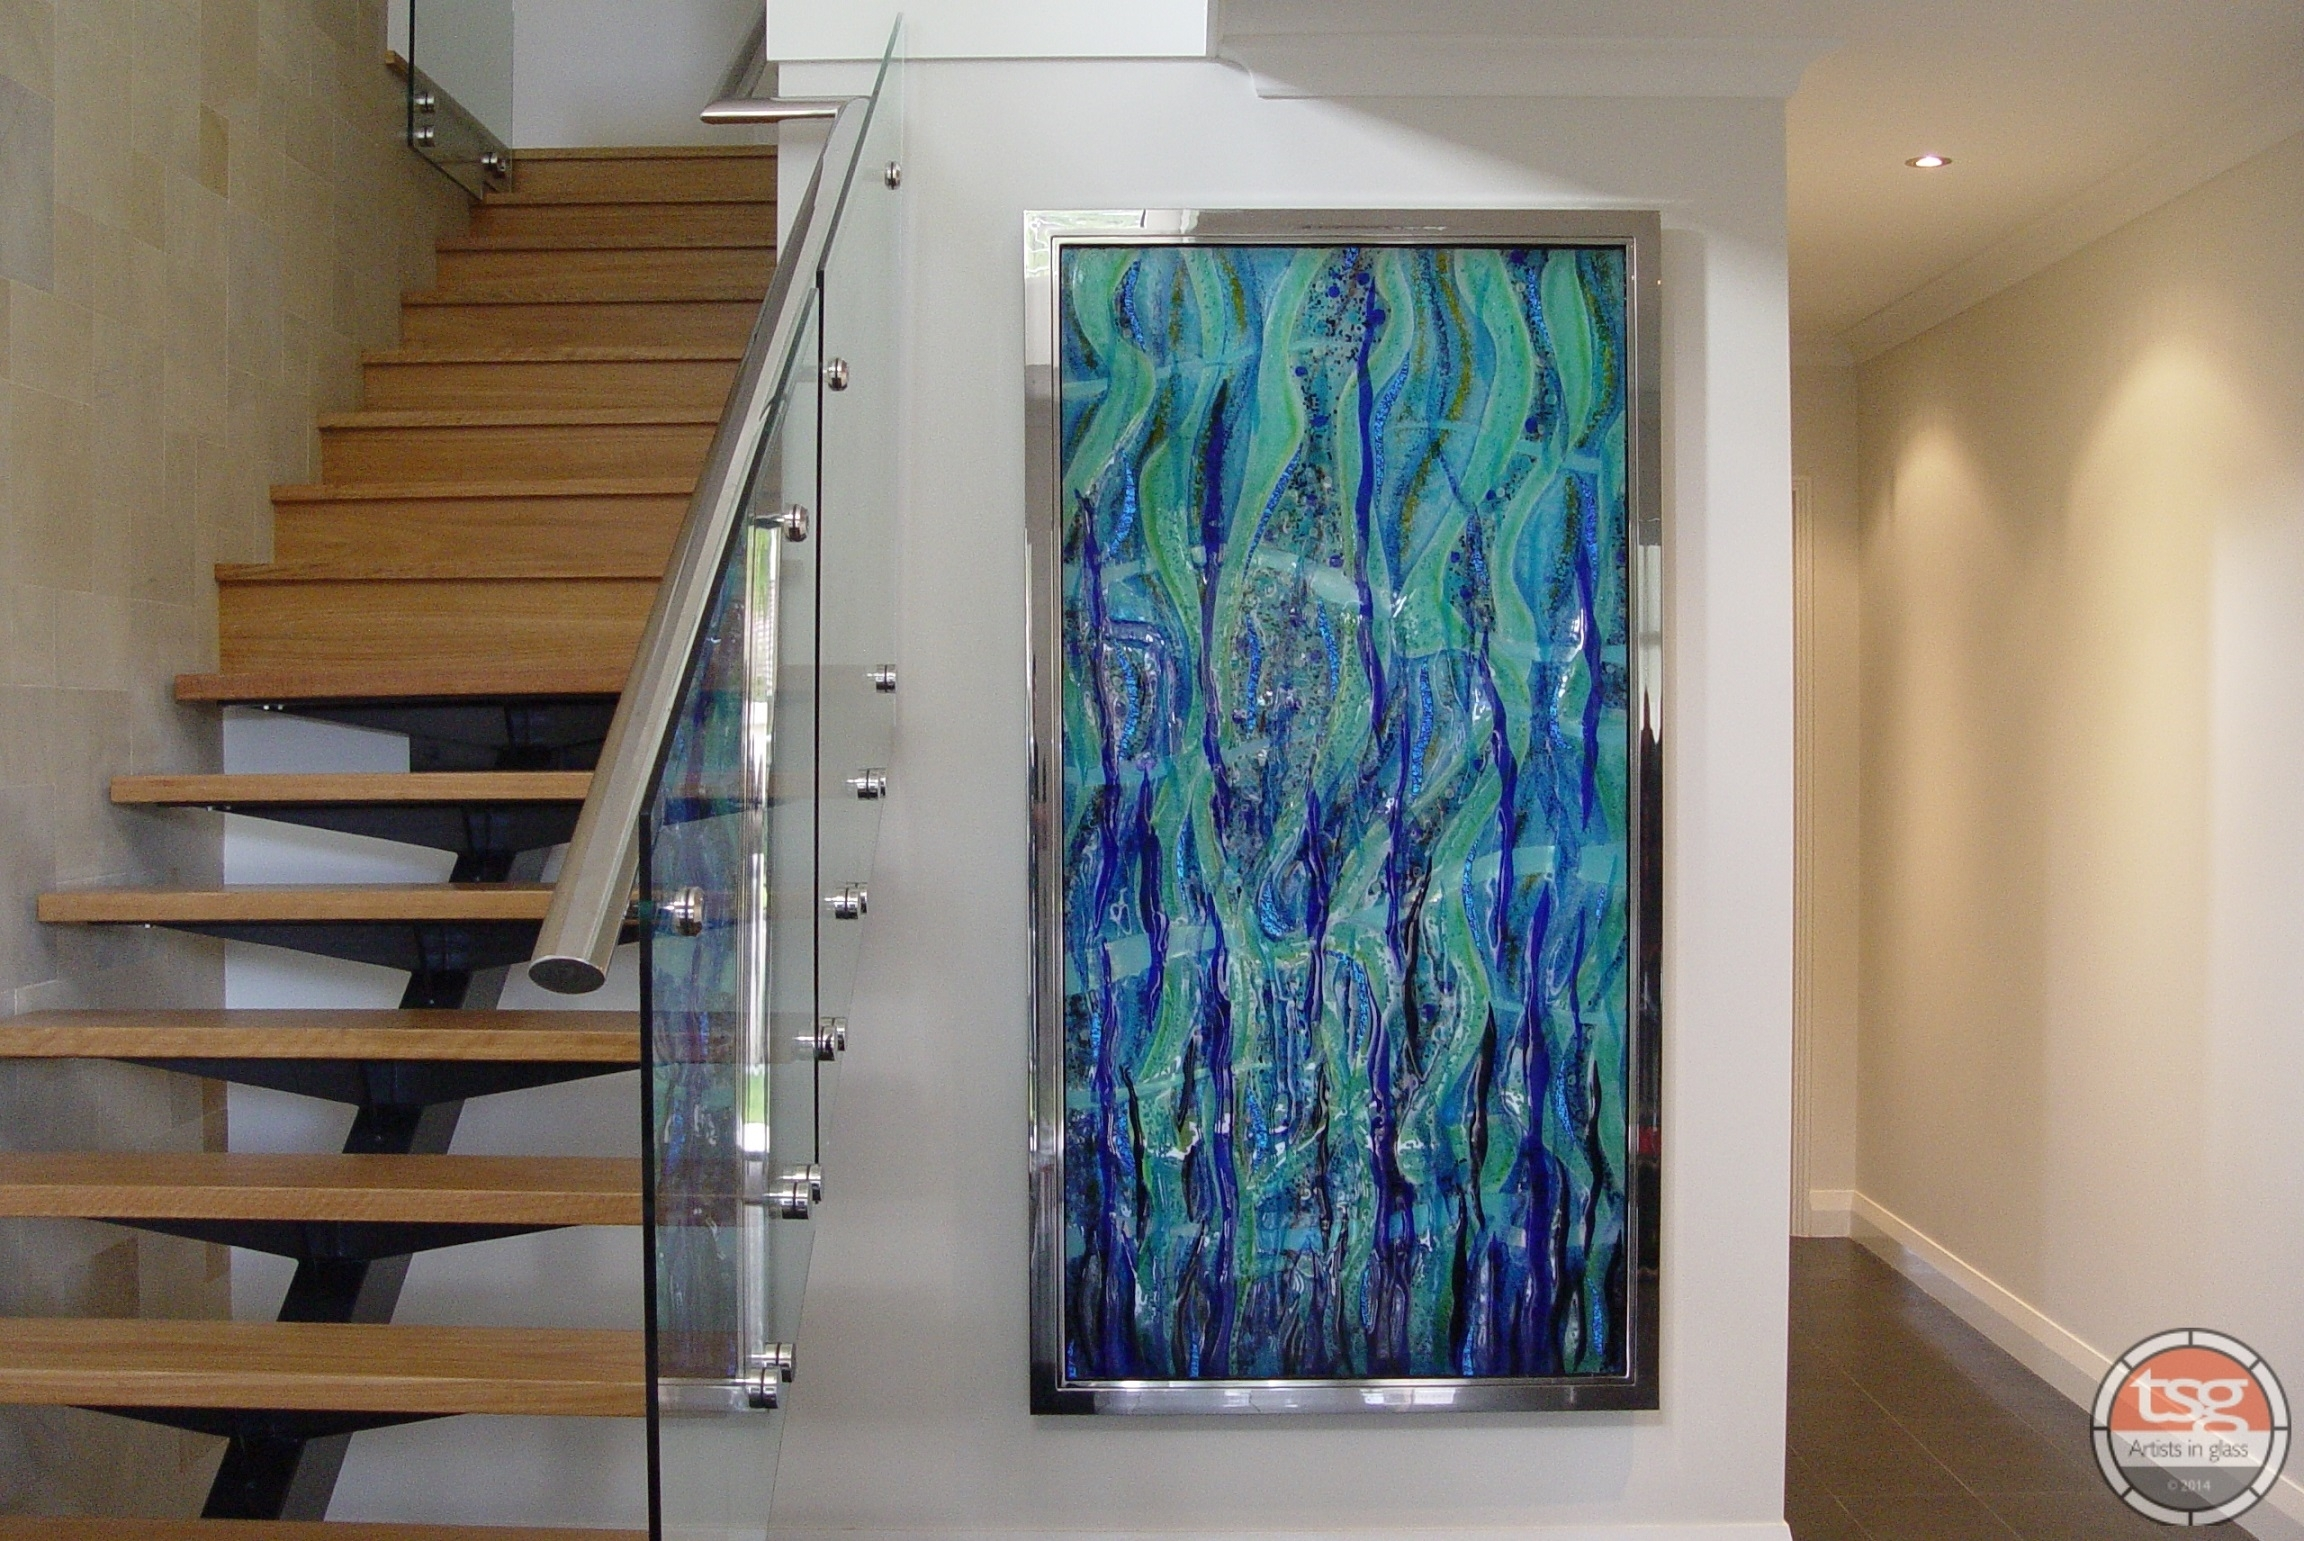 Neoteric Blown Glass Wall Art   You Like Our Architecture Design Inside Blown Glass Wall Art (Photo 17 of 20)